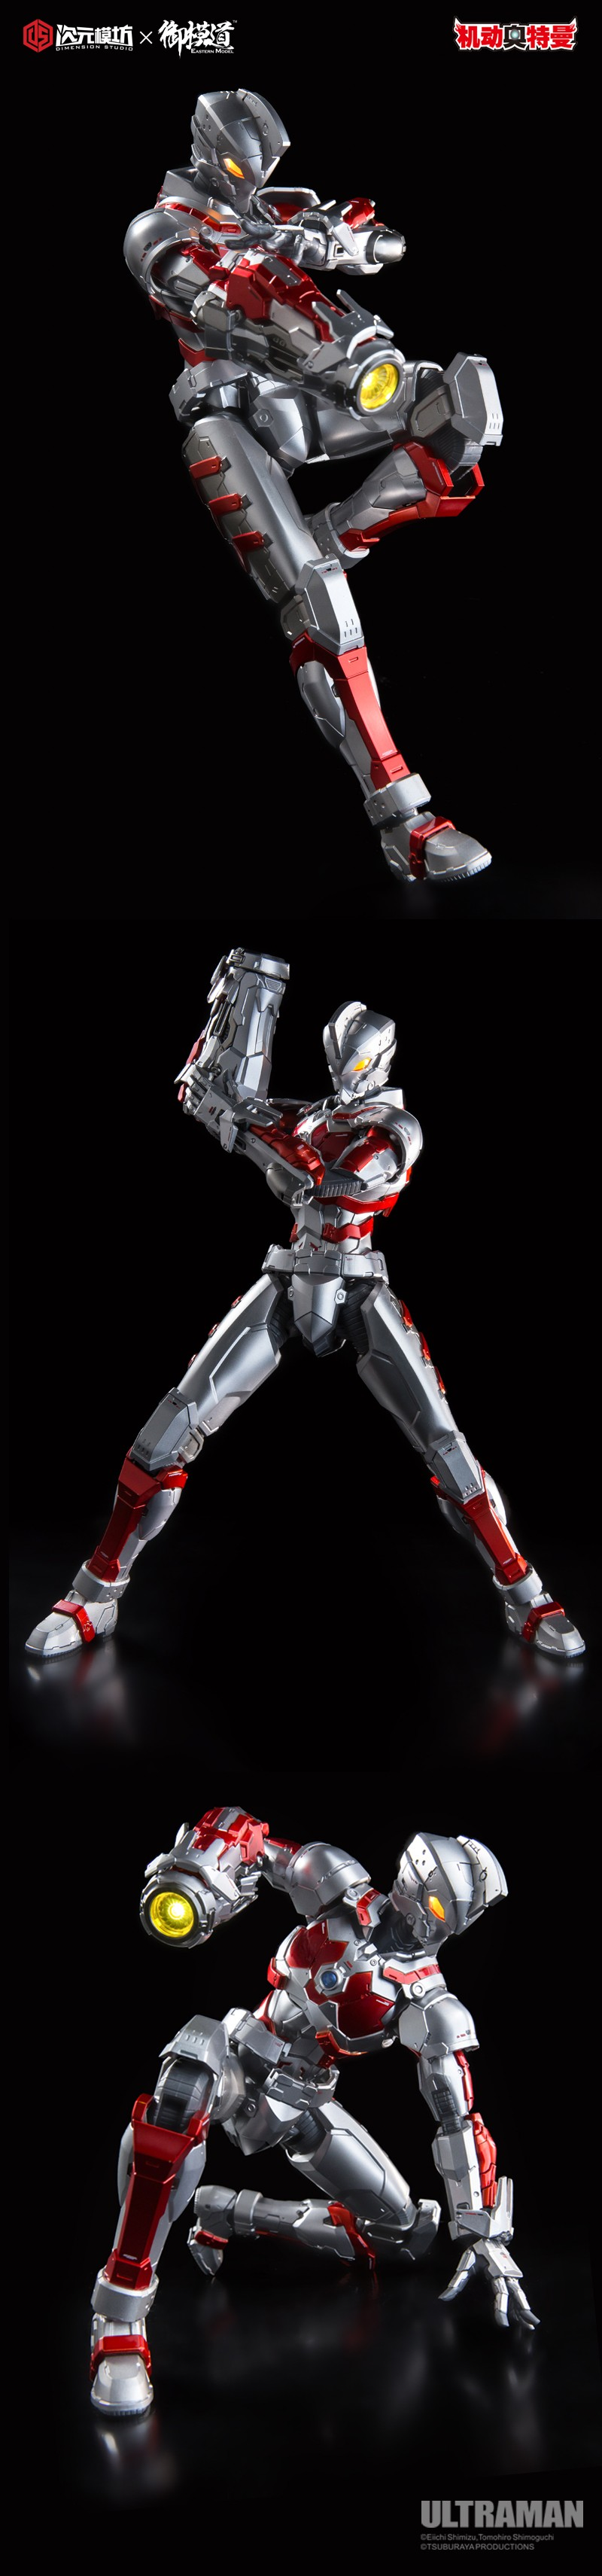 male - NEW PRODUCT: Dimension Mould X X Moto Road: 1/6 Mobile Ultraman Alloy Finished Series - Ess Altman 18214210